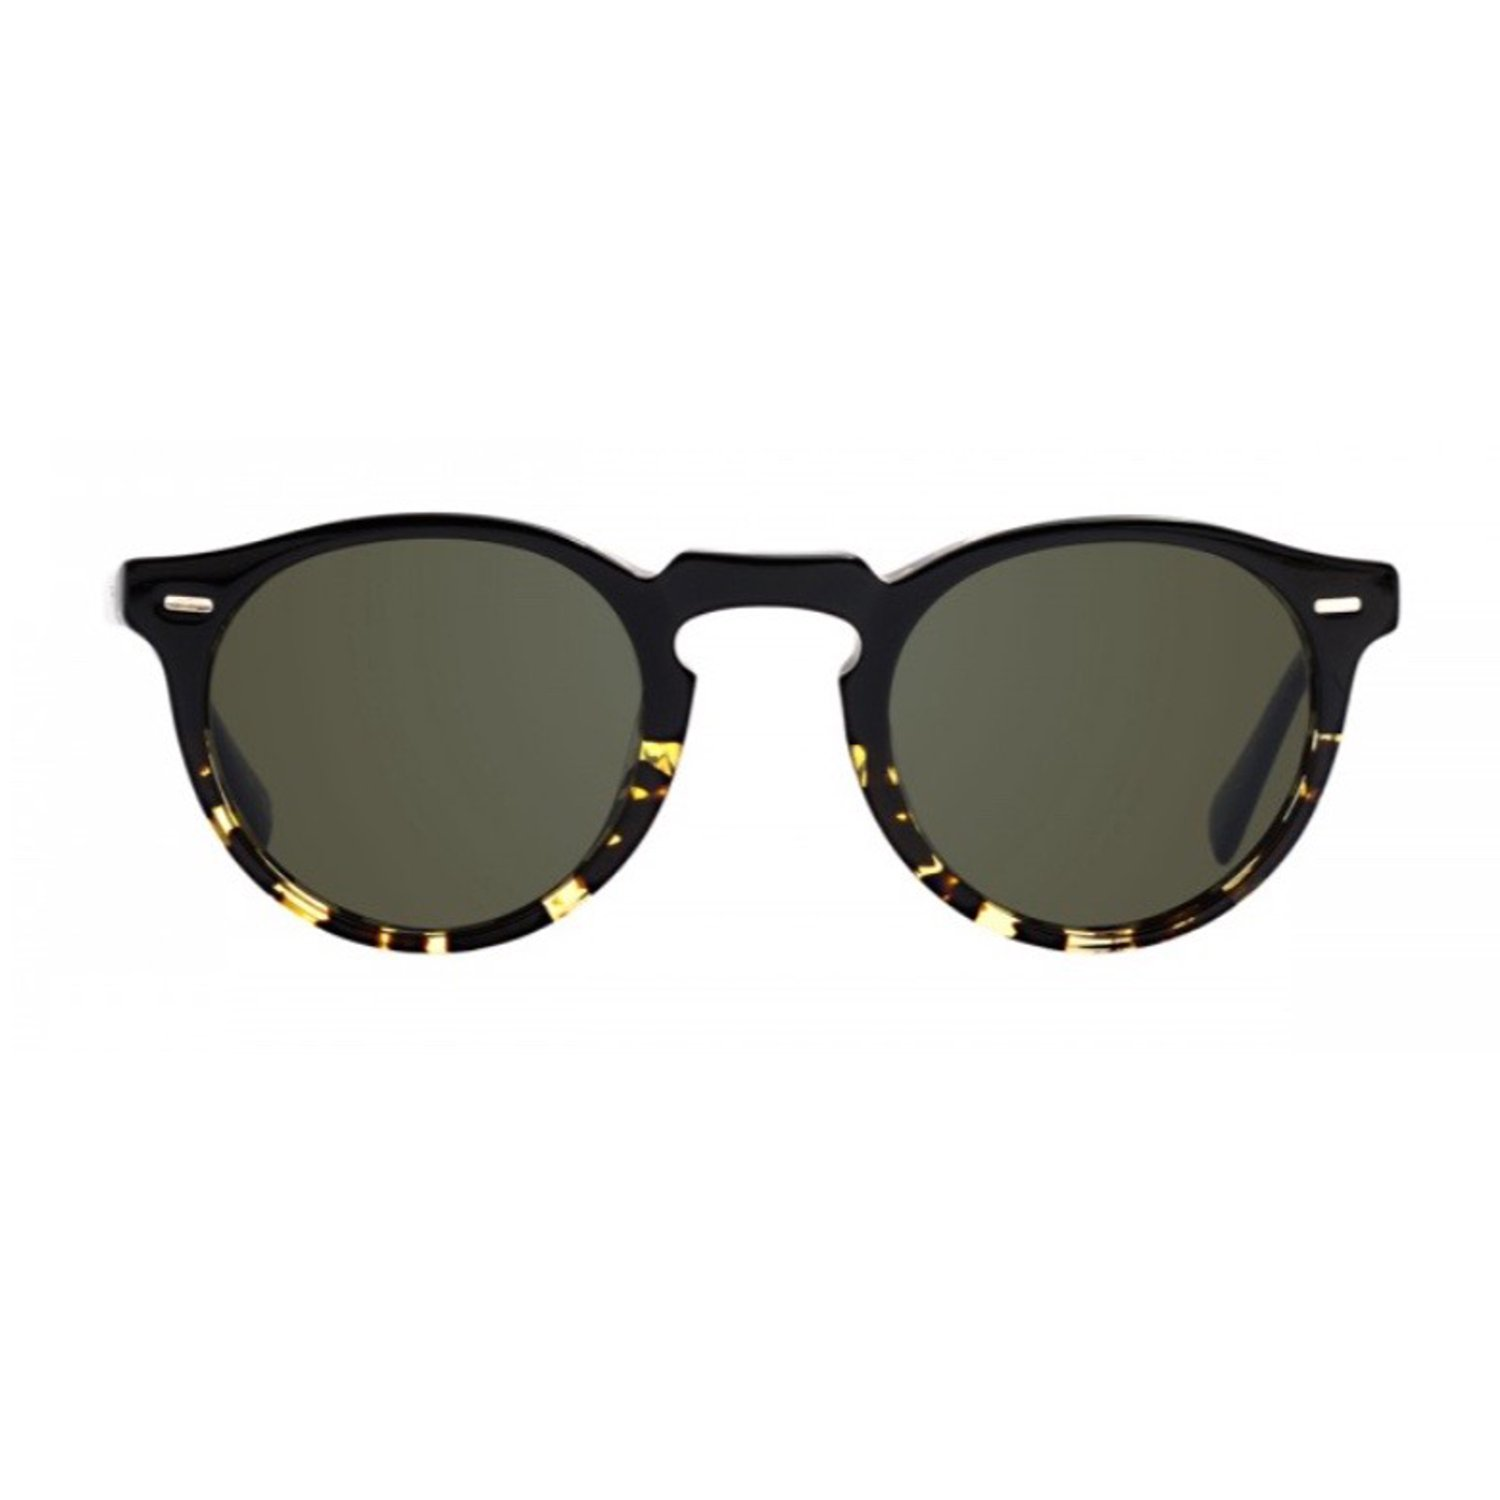 04207dd5af Oliver Peoples OV5217S 1178P1 Sun Black Tortoise Gregory Peck Sun Round  Sungl  Amazon.co.uk  Clothing